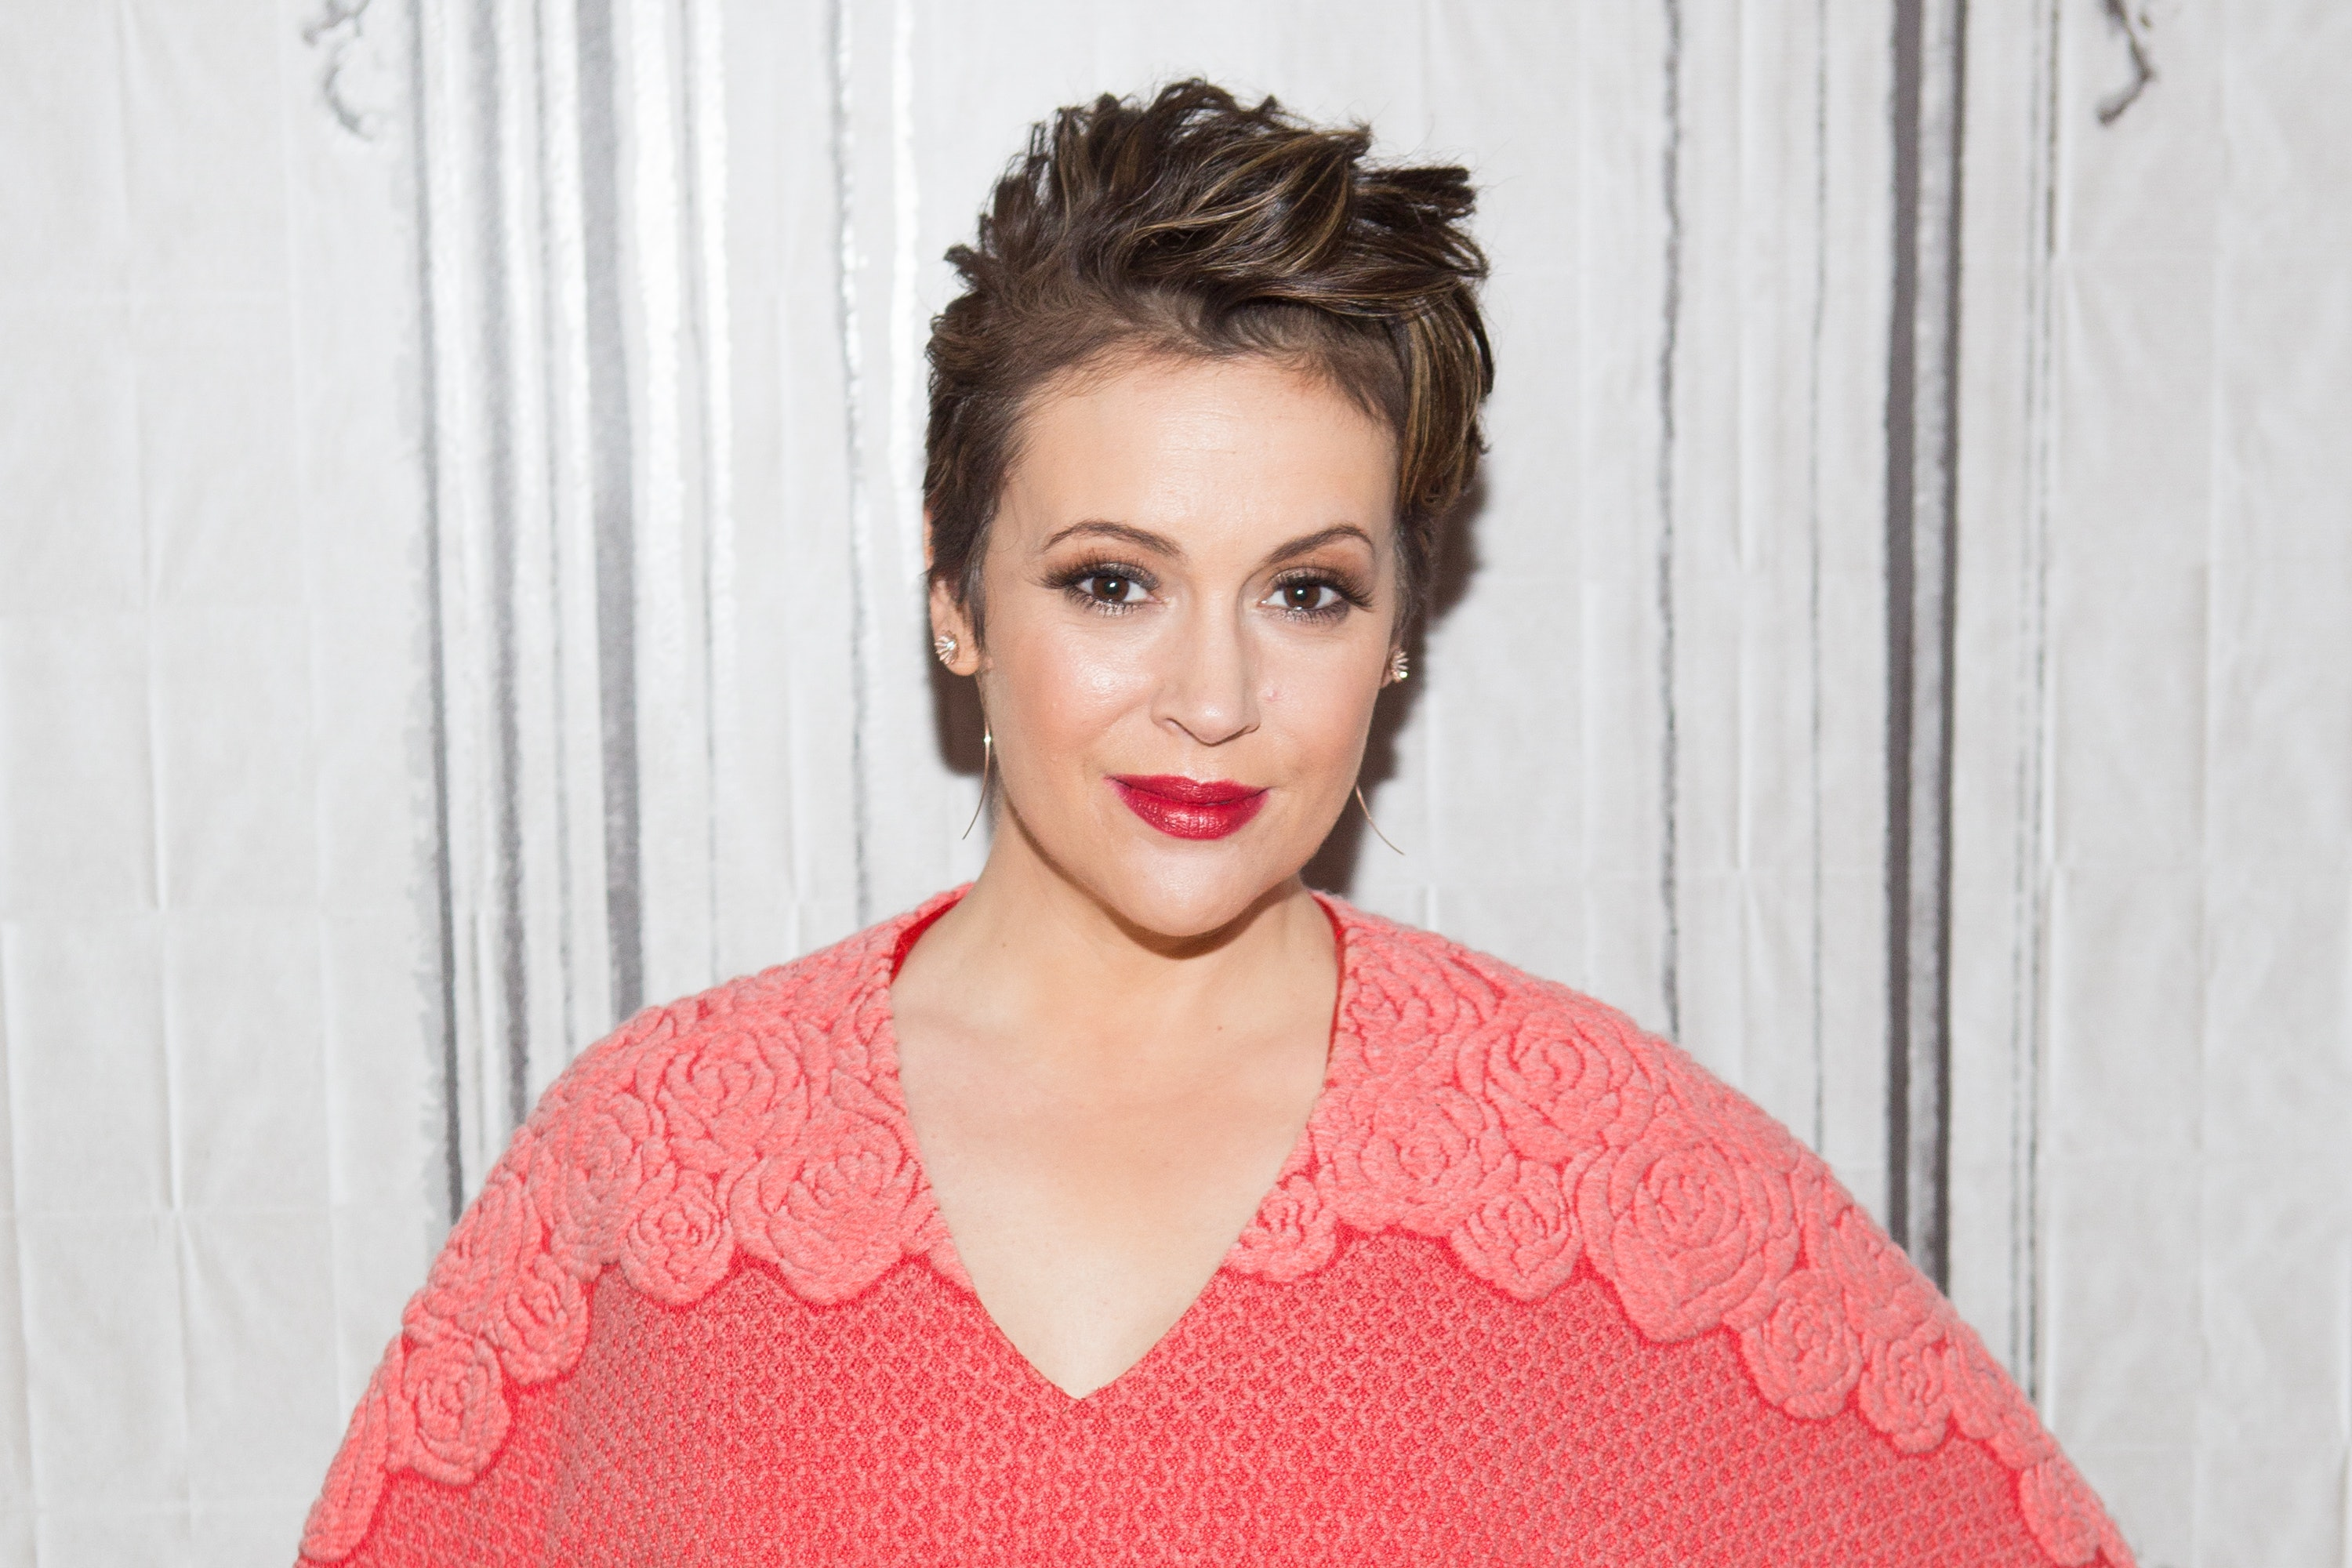 Pictures Alyssa Milano naked (94 foto and video), Topless, Paparazzi, Selfie, cameltoe 2006